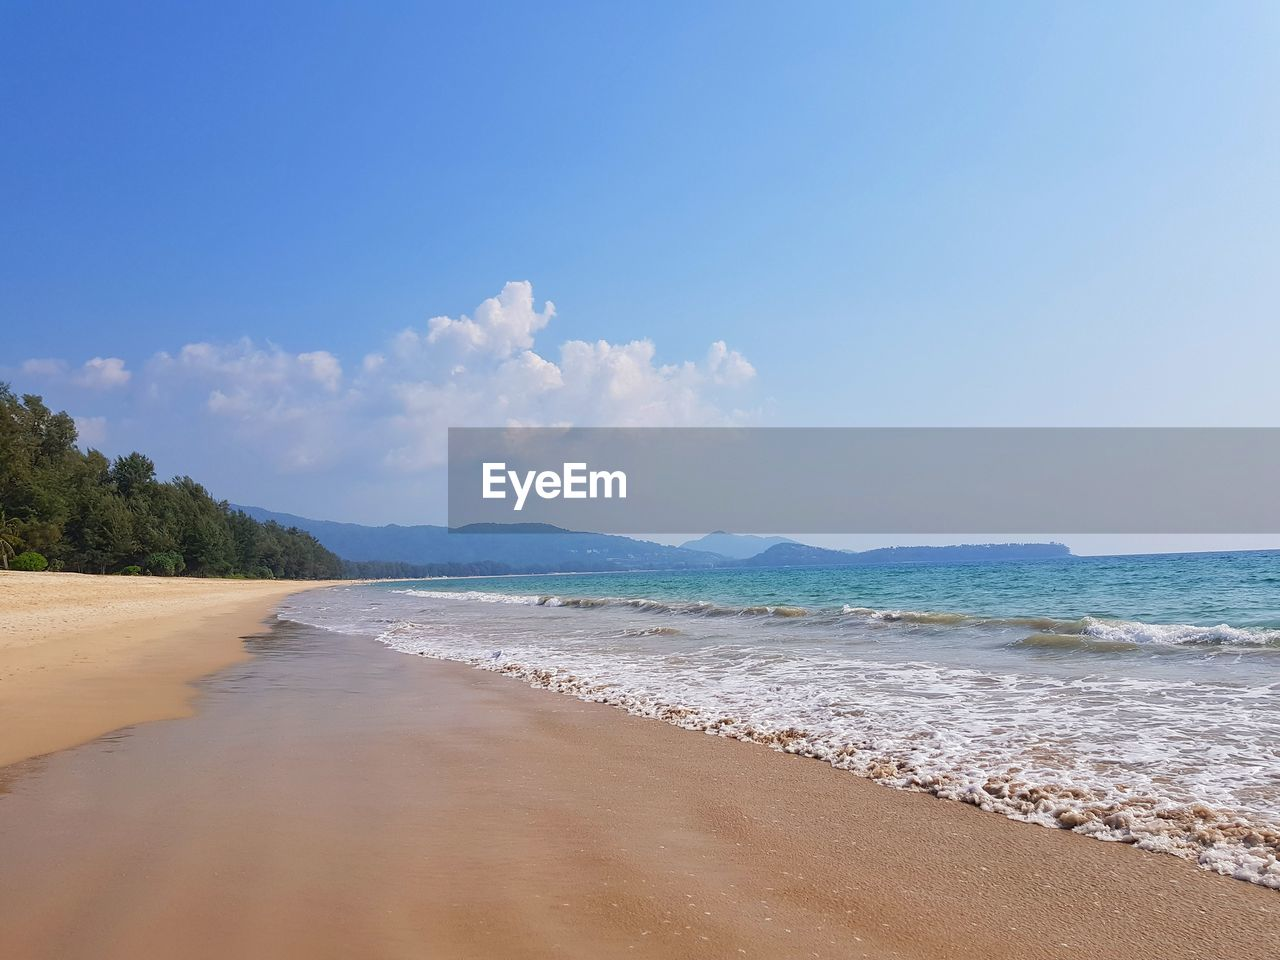 water, sea, land, beach, sky, beauty in nature, scenics - nature, tranquility, sand, tranquil scene, cloud - sky, nature, idyllic, non-urban scene, day, motion, tree, no people, wave, outdoors